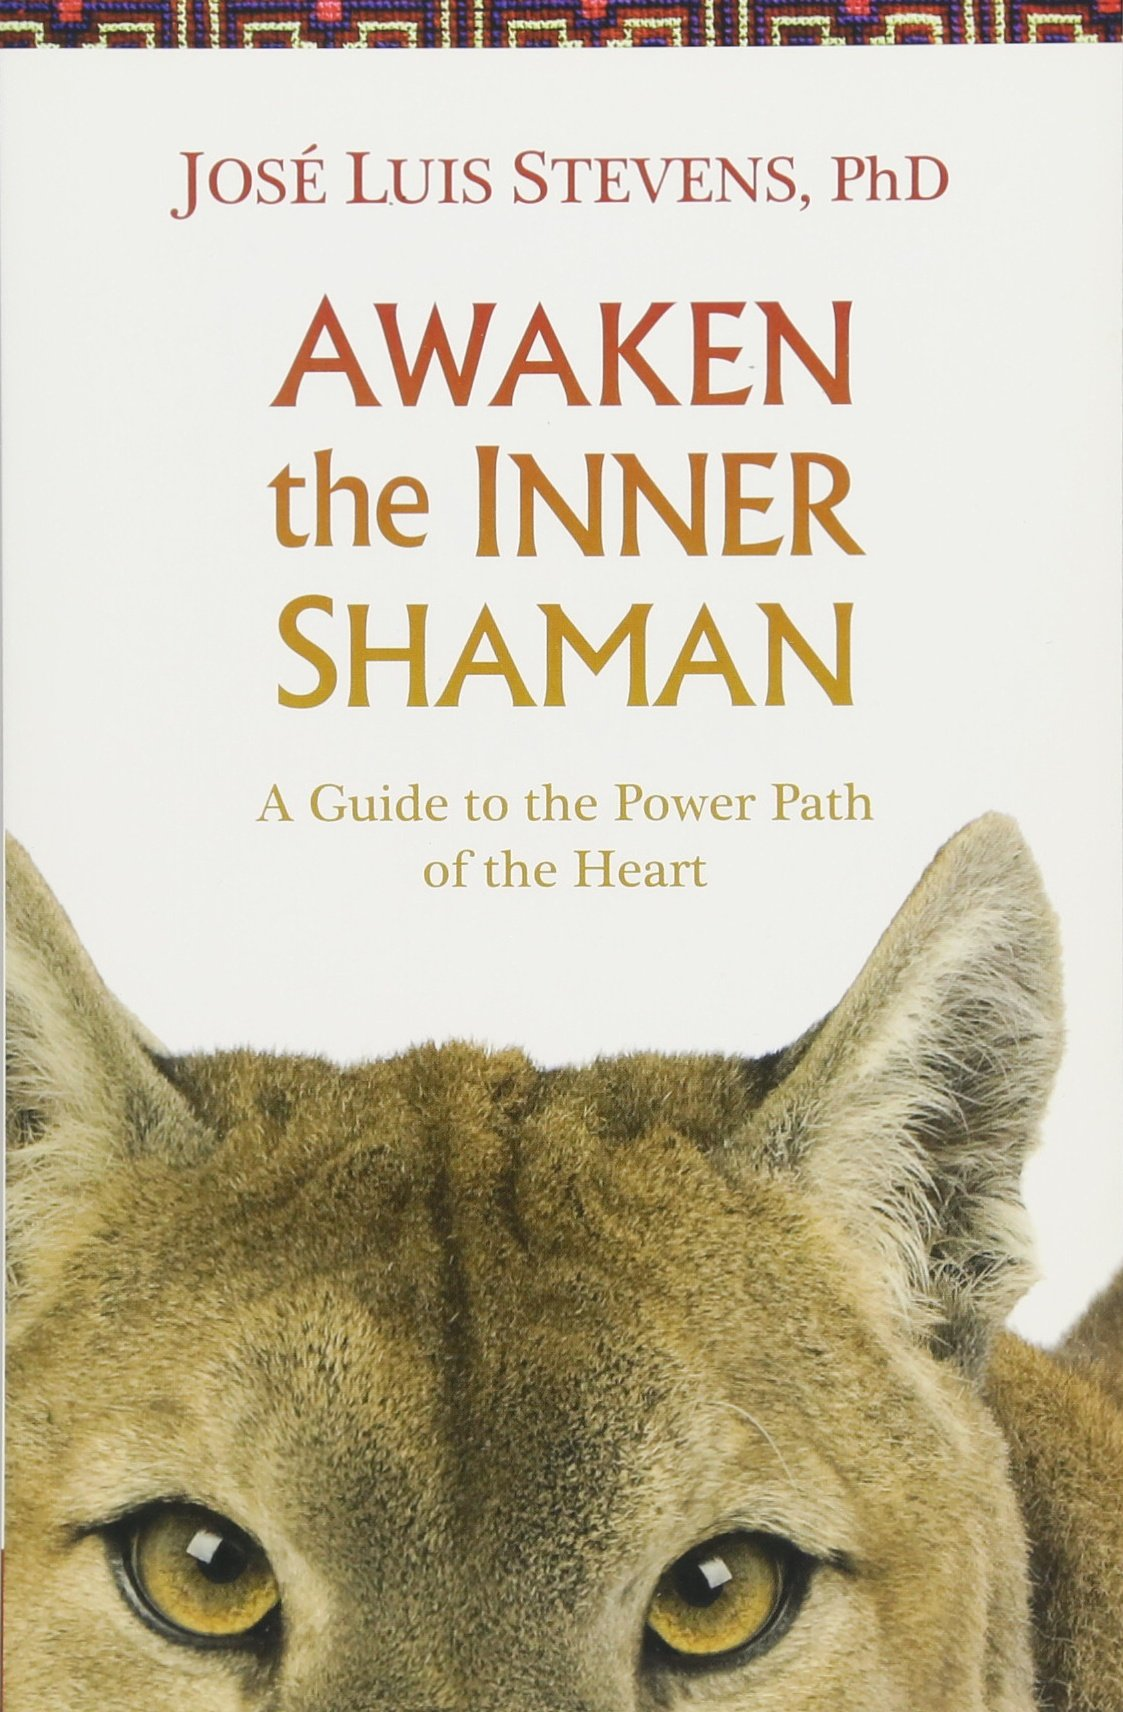 Awaken the Inner Shaman: A Guide to the Power Path of the Heart PDF